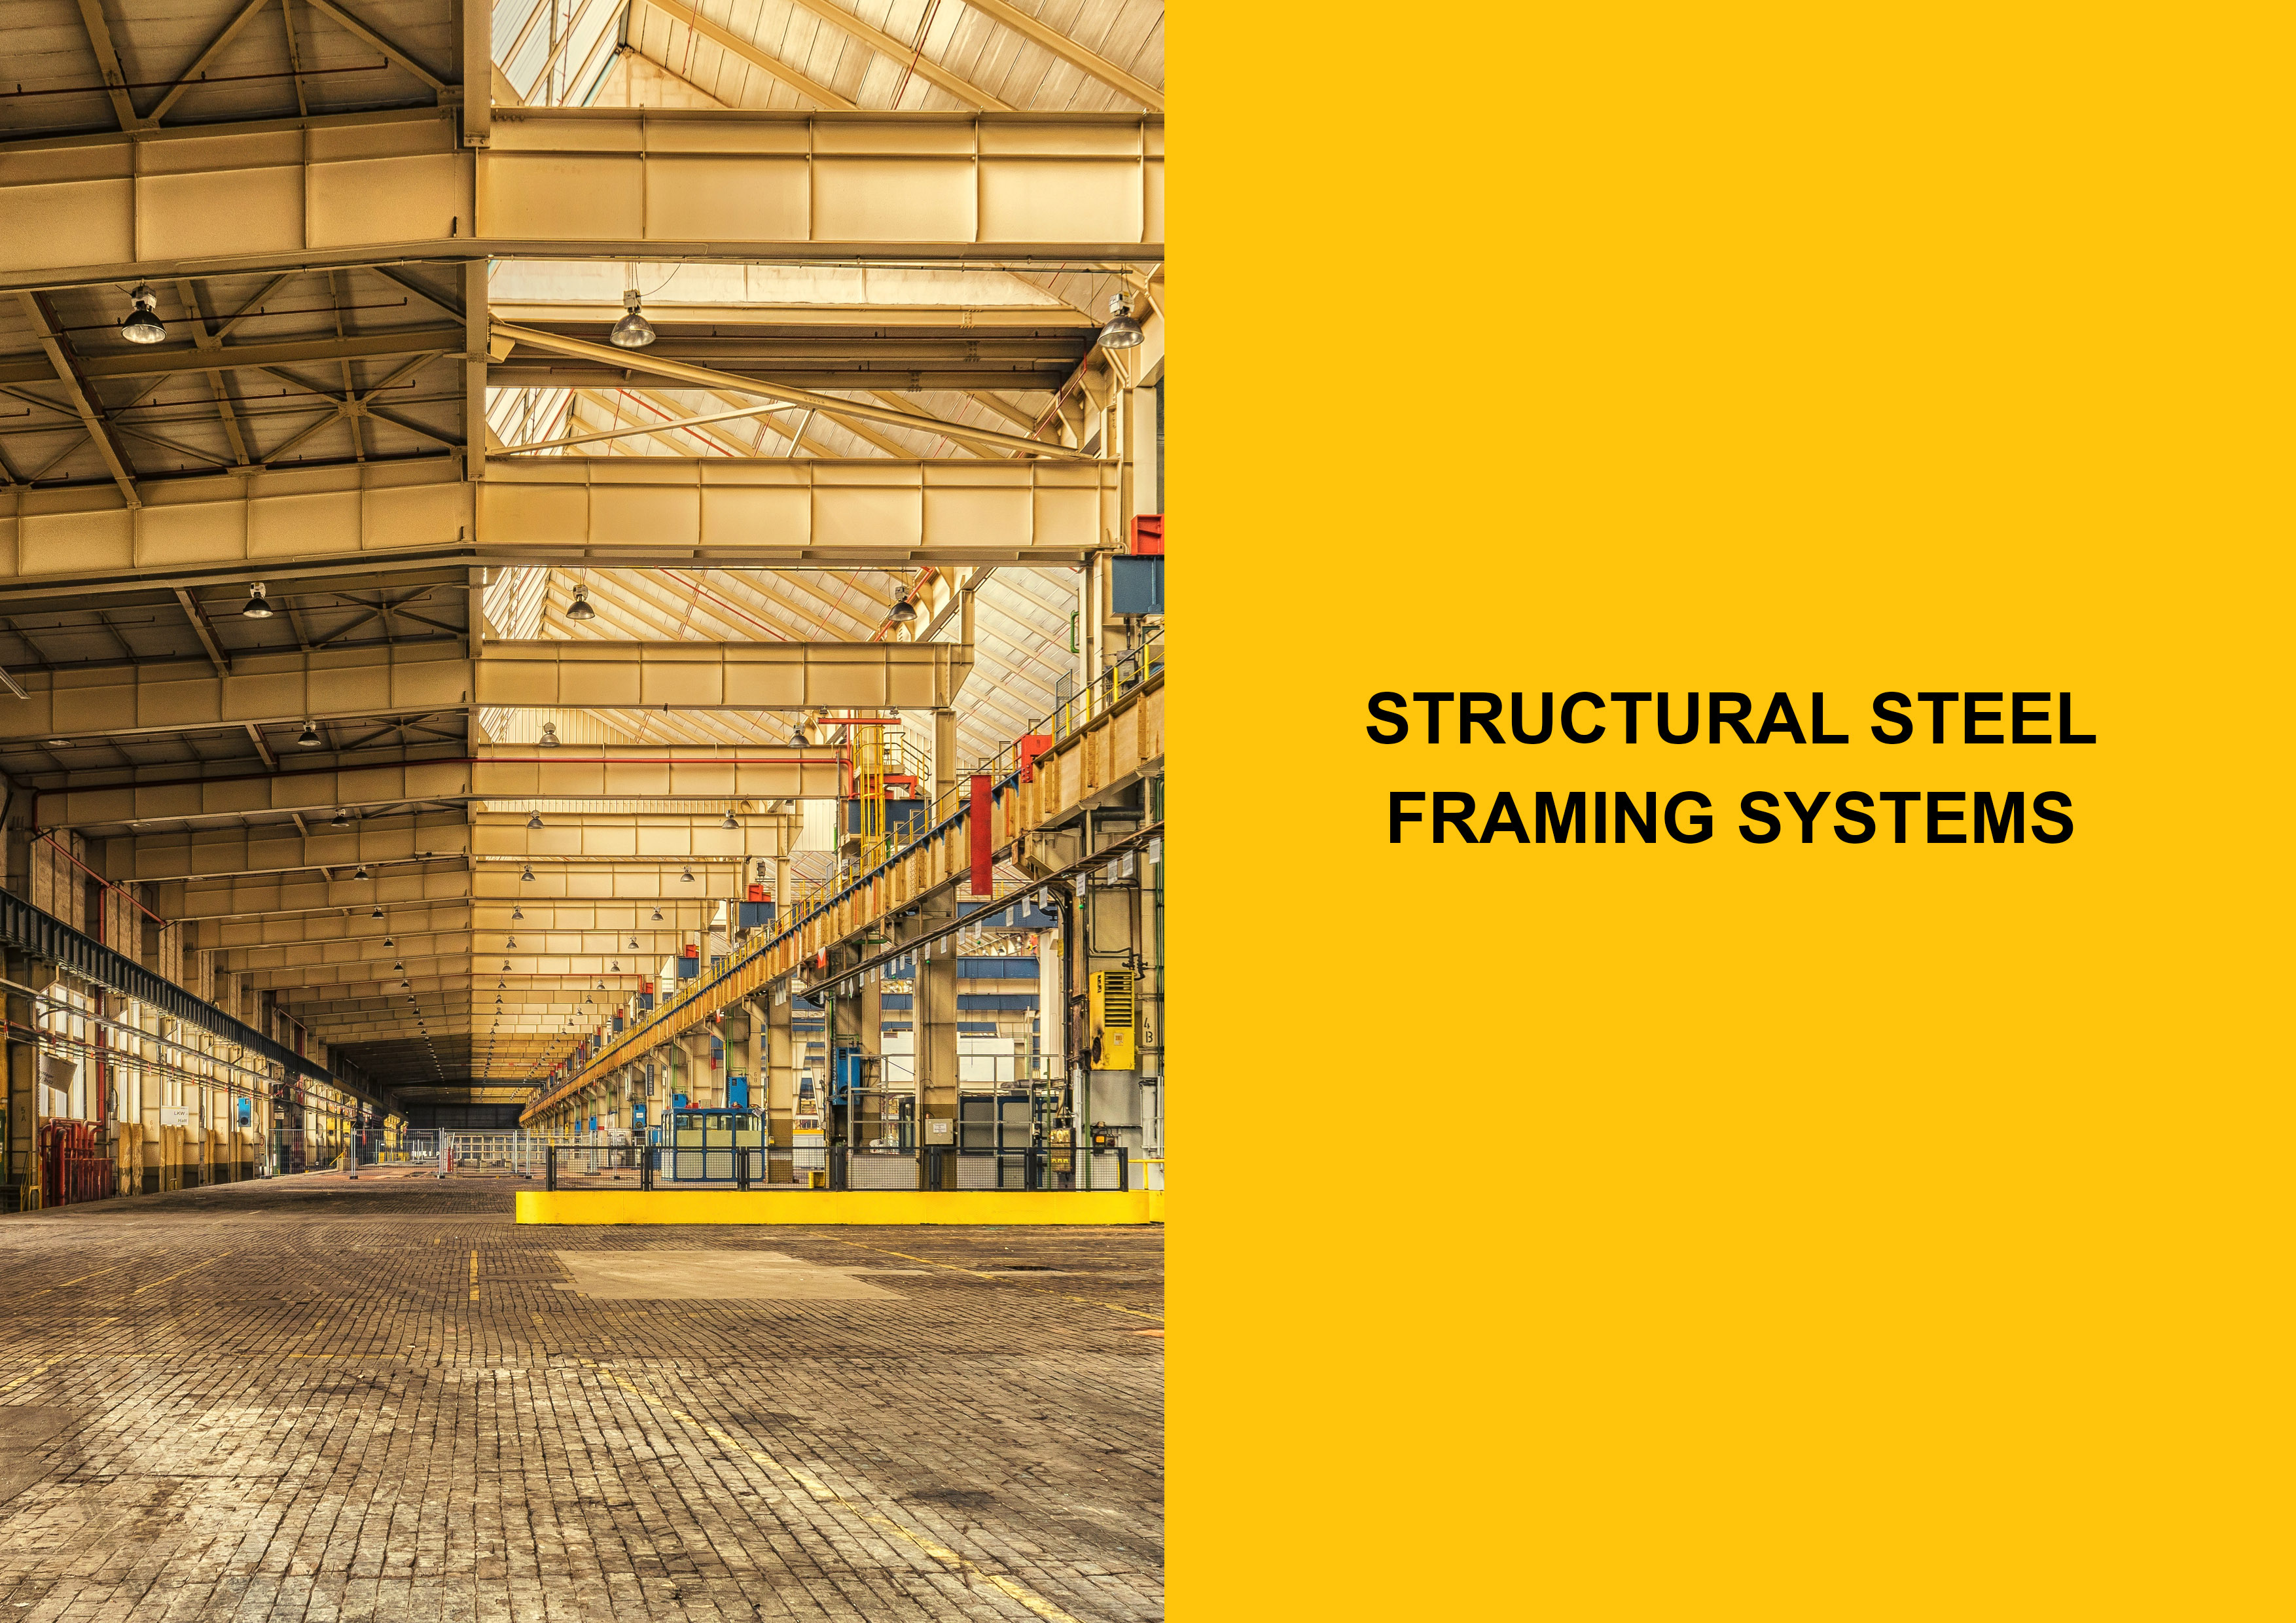 Structural Steel Framing Systems